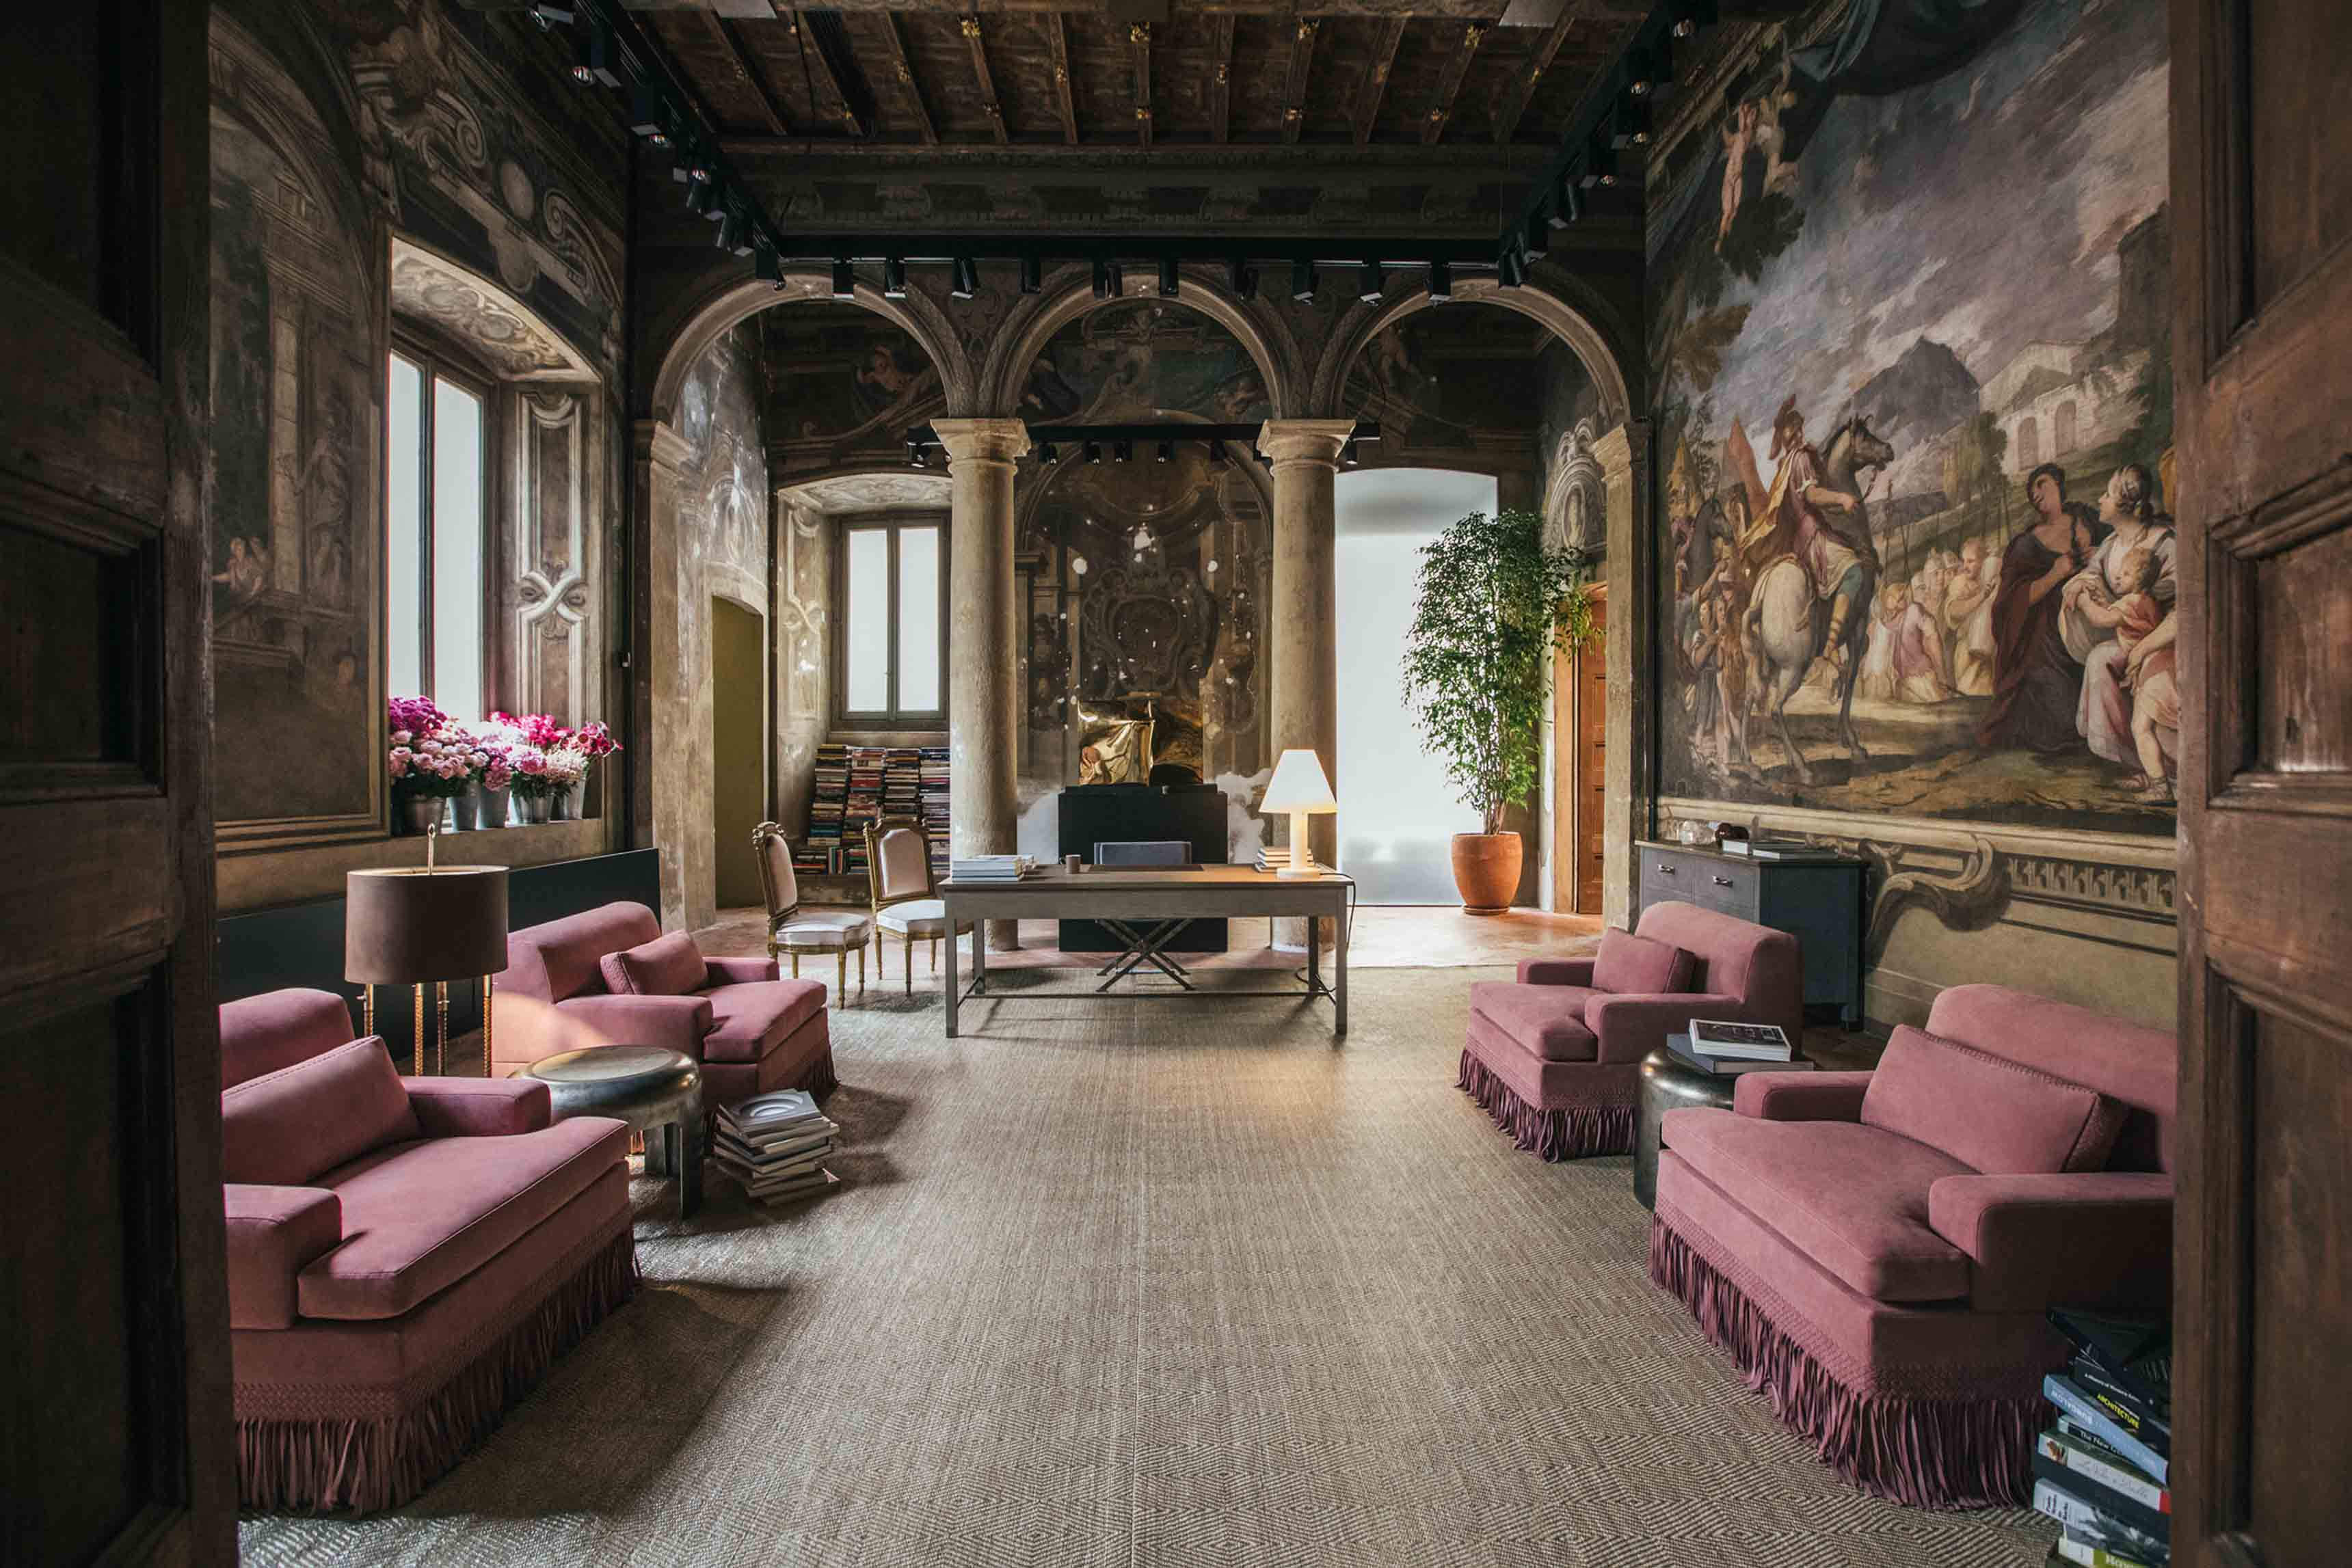 Vue d'ensemble sur la nouvelle collection Maison de Bottega Veneta, à l'occasion du Salone del Mobile de Milan.